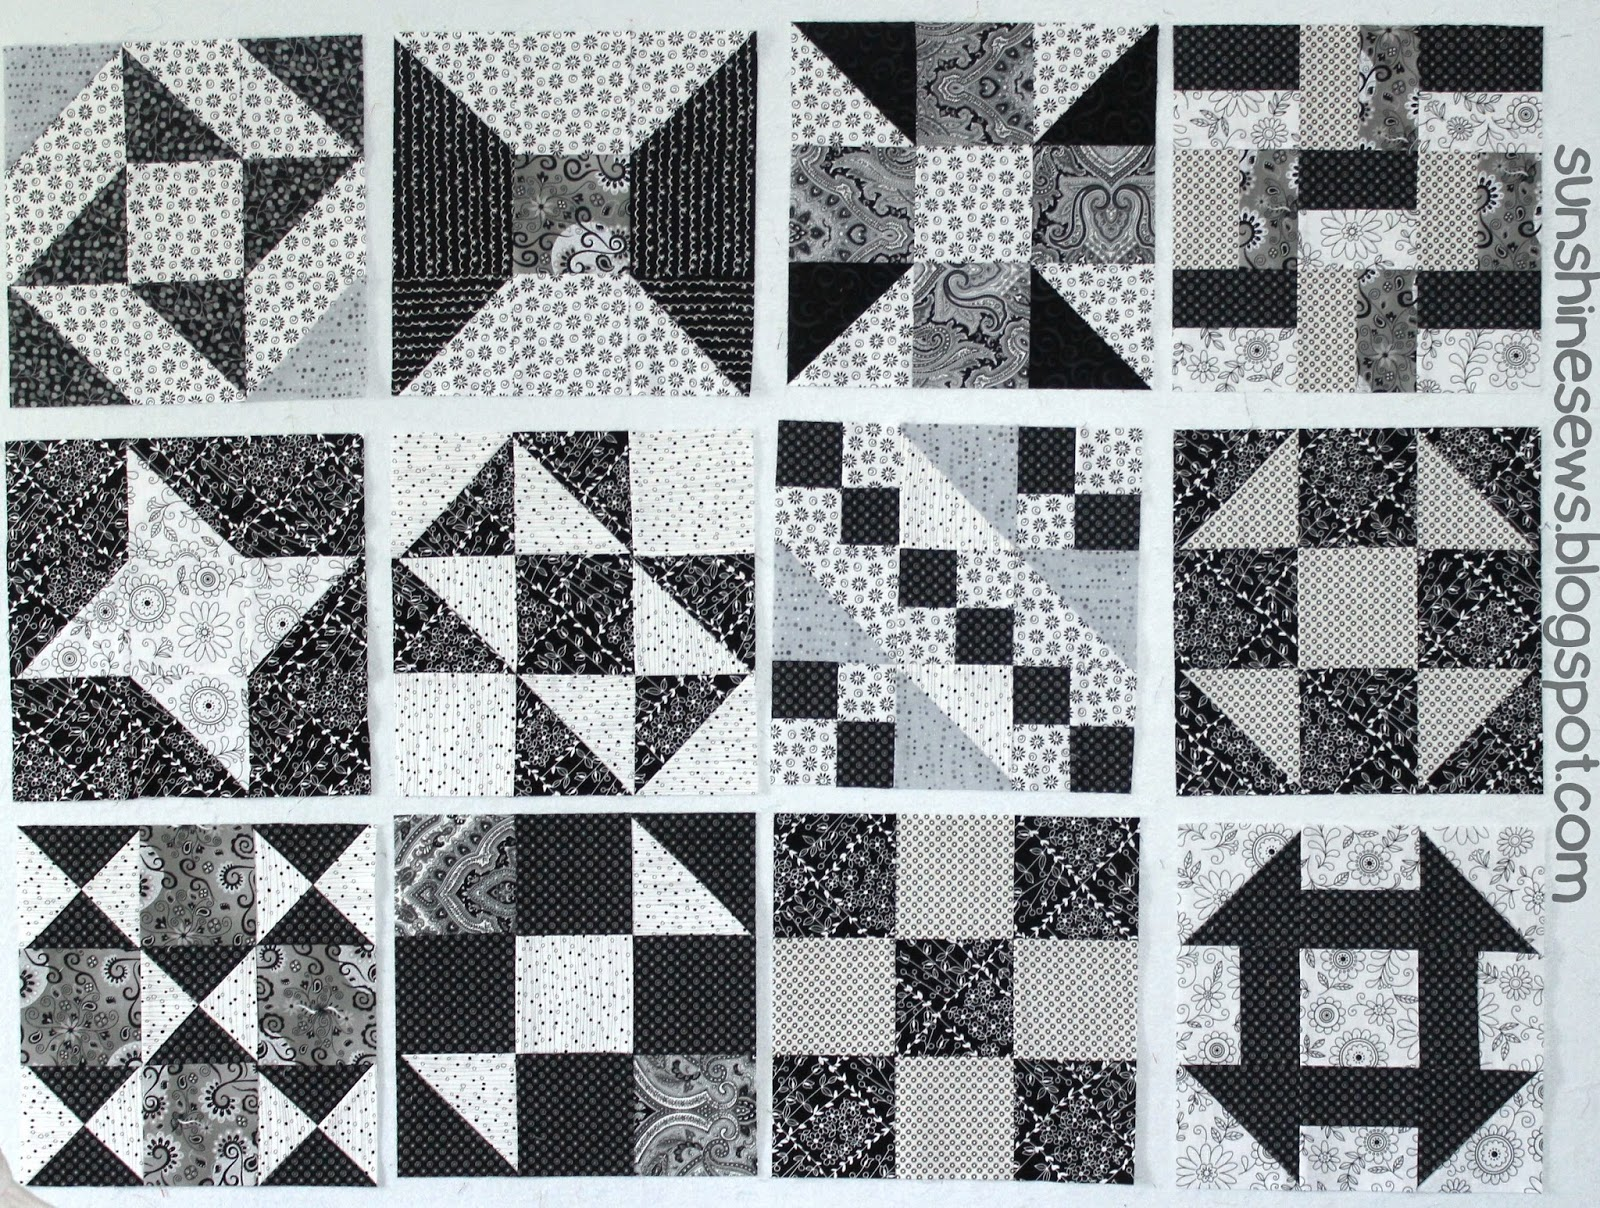 Black and White Sampler Quilt